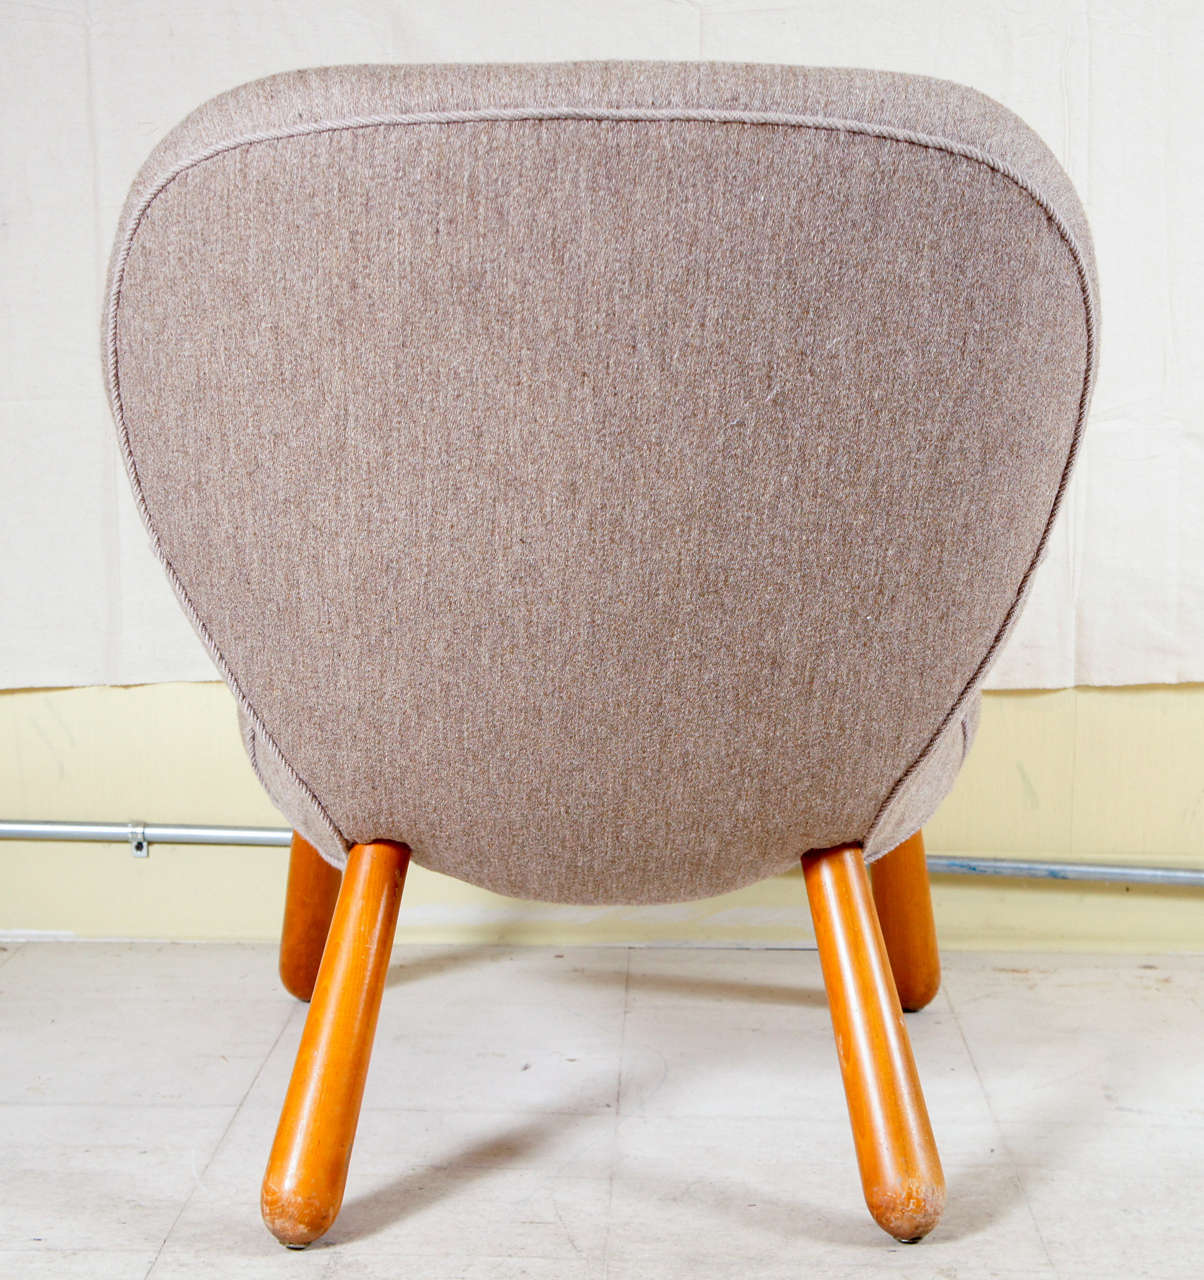 'Clam Chair' by Philip Arctander 4